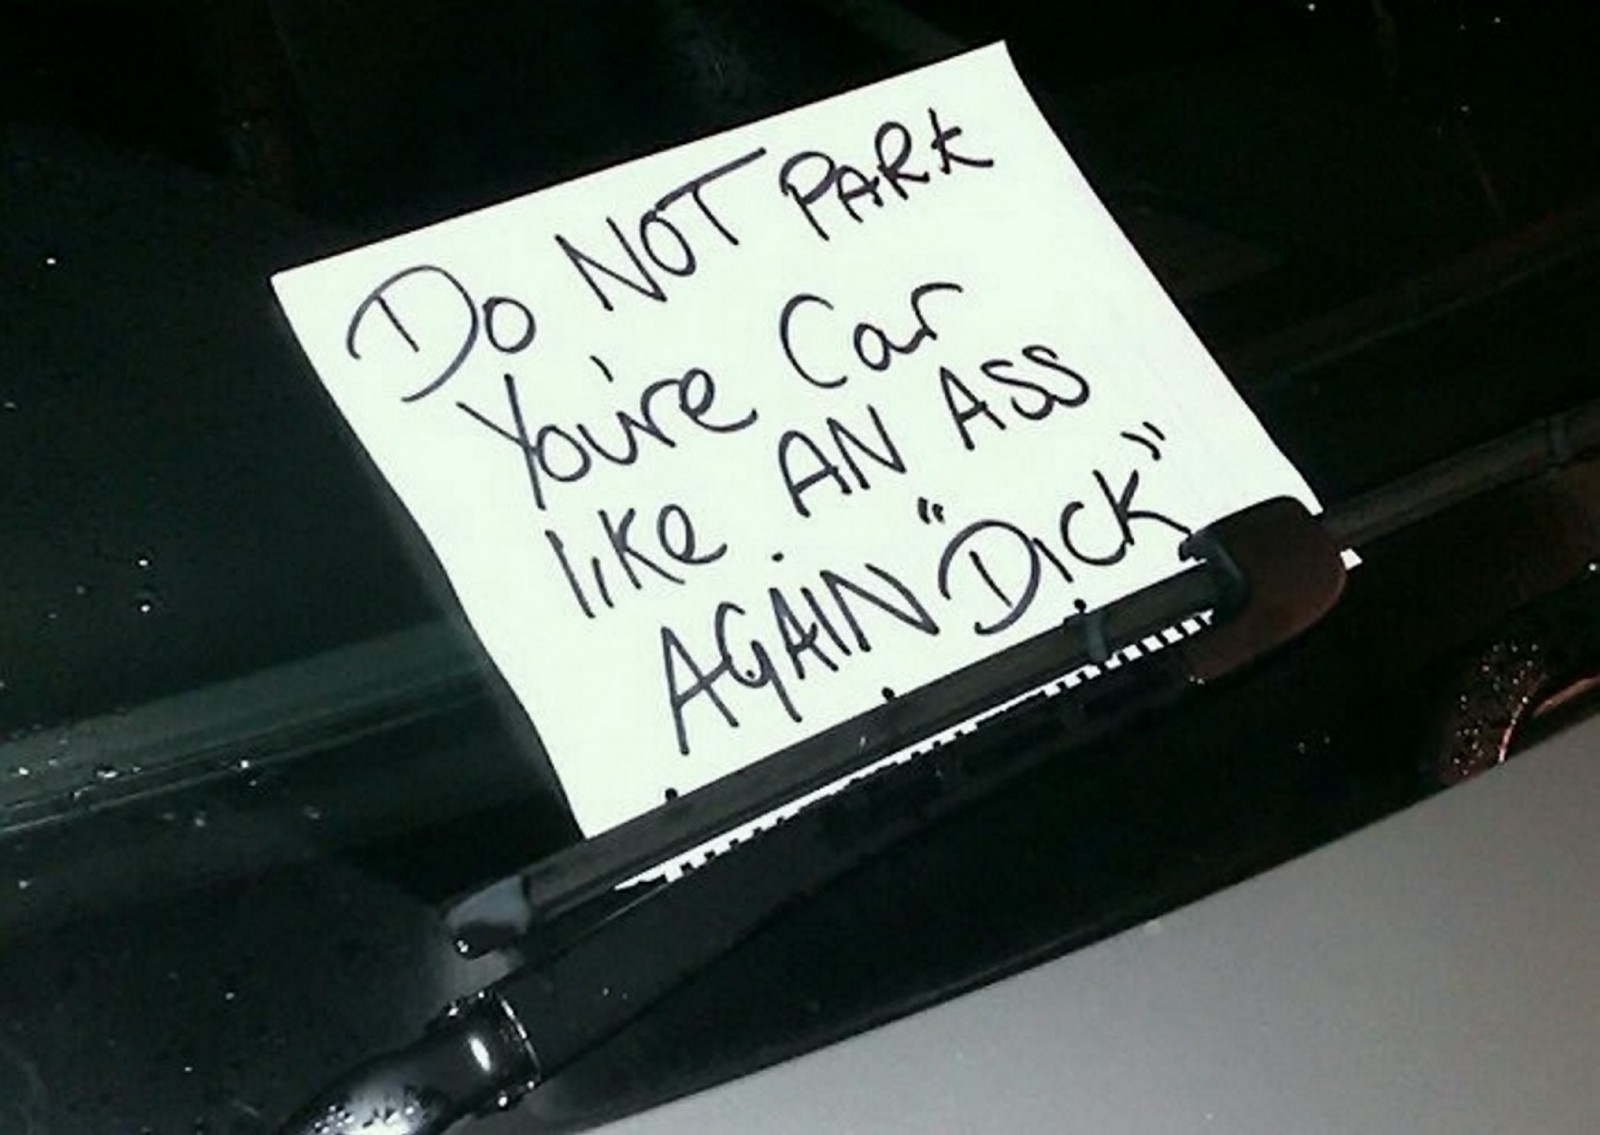 But sometimes only a passive aggressive note will do